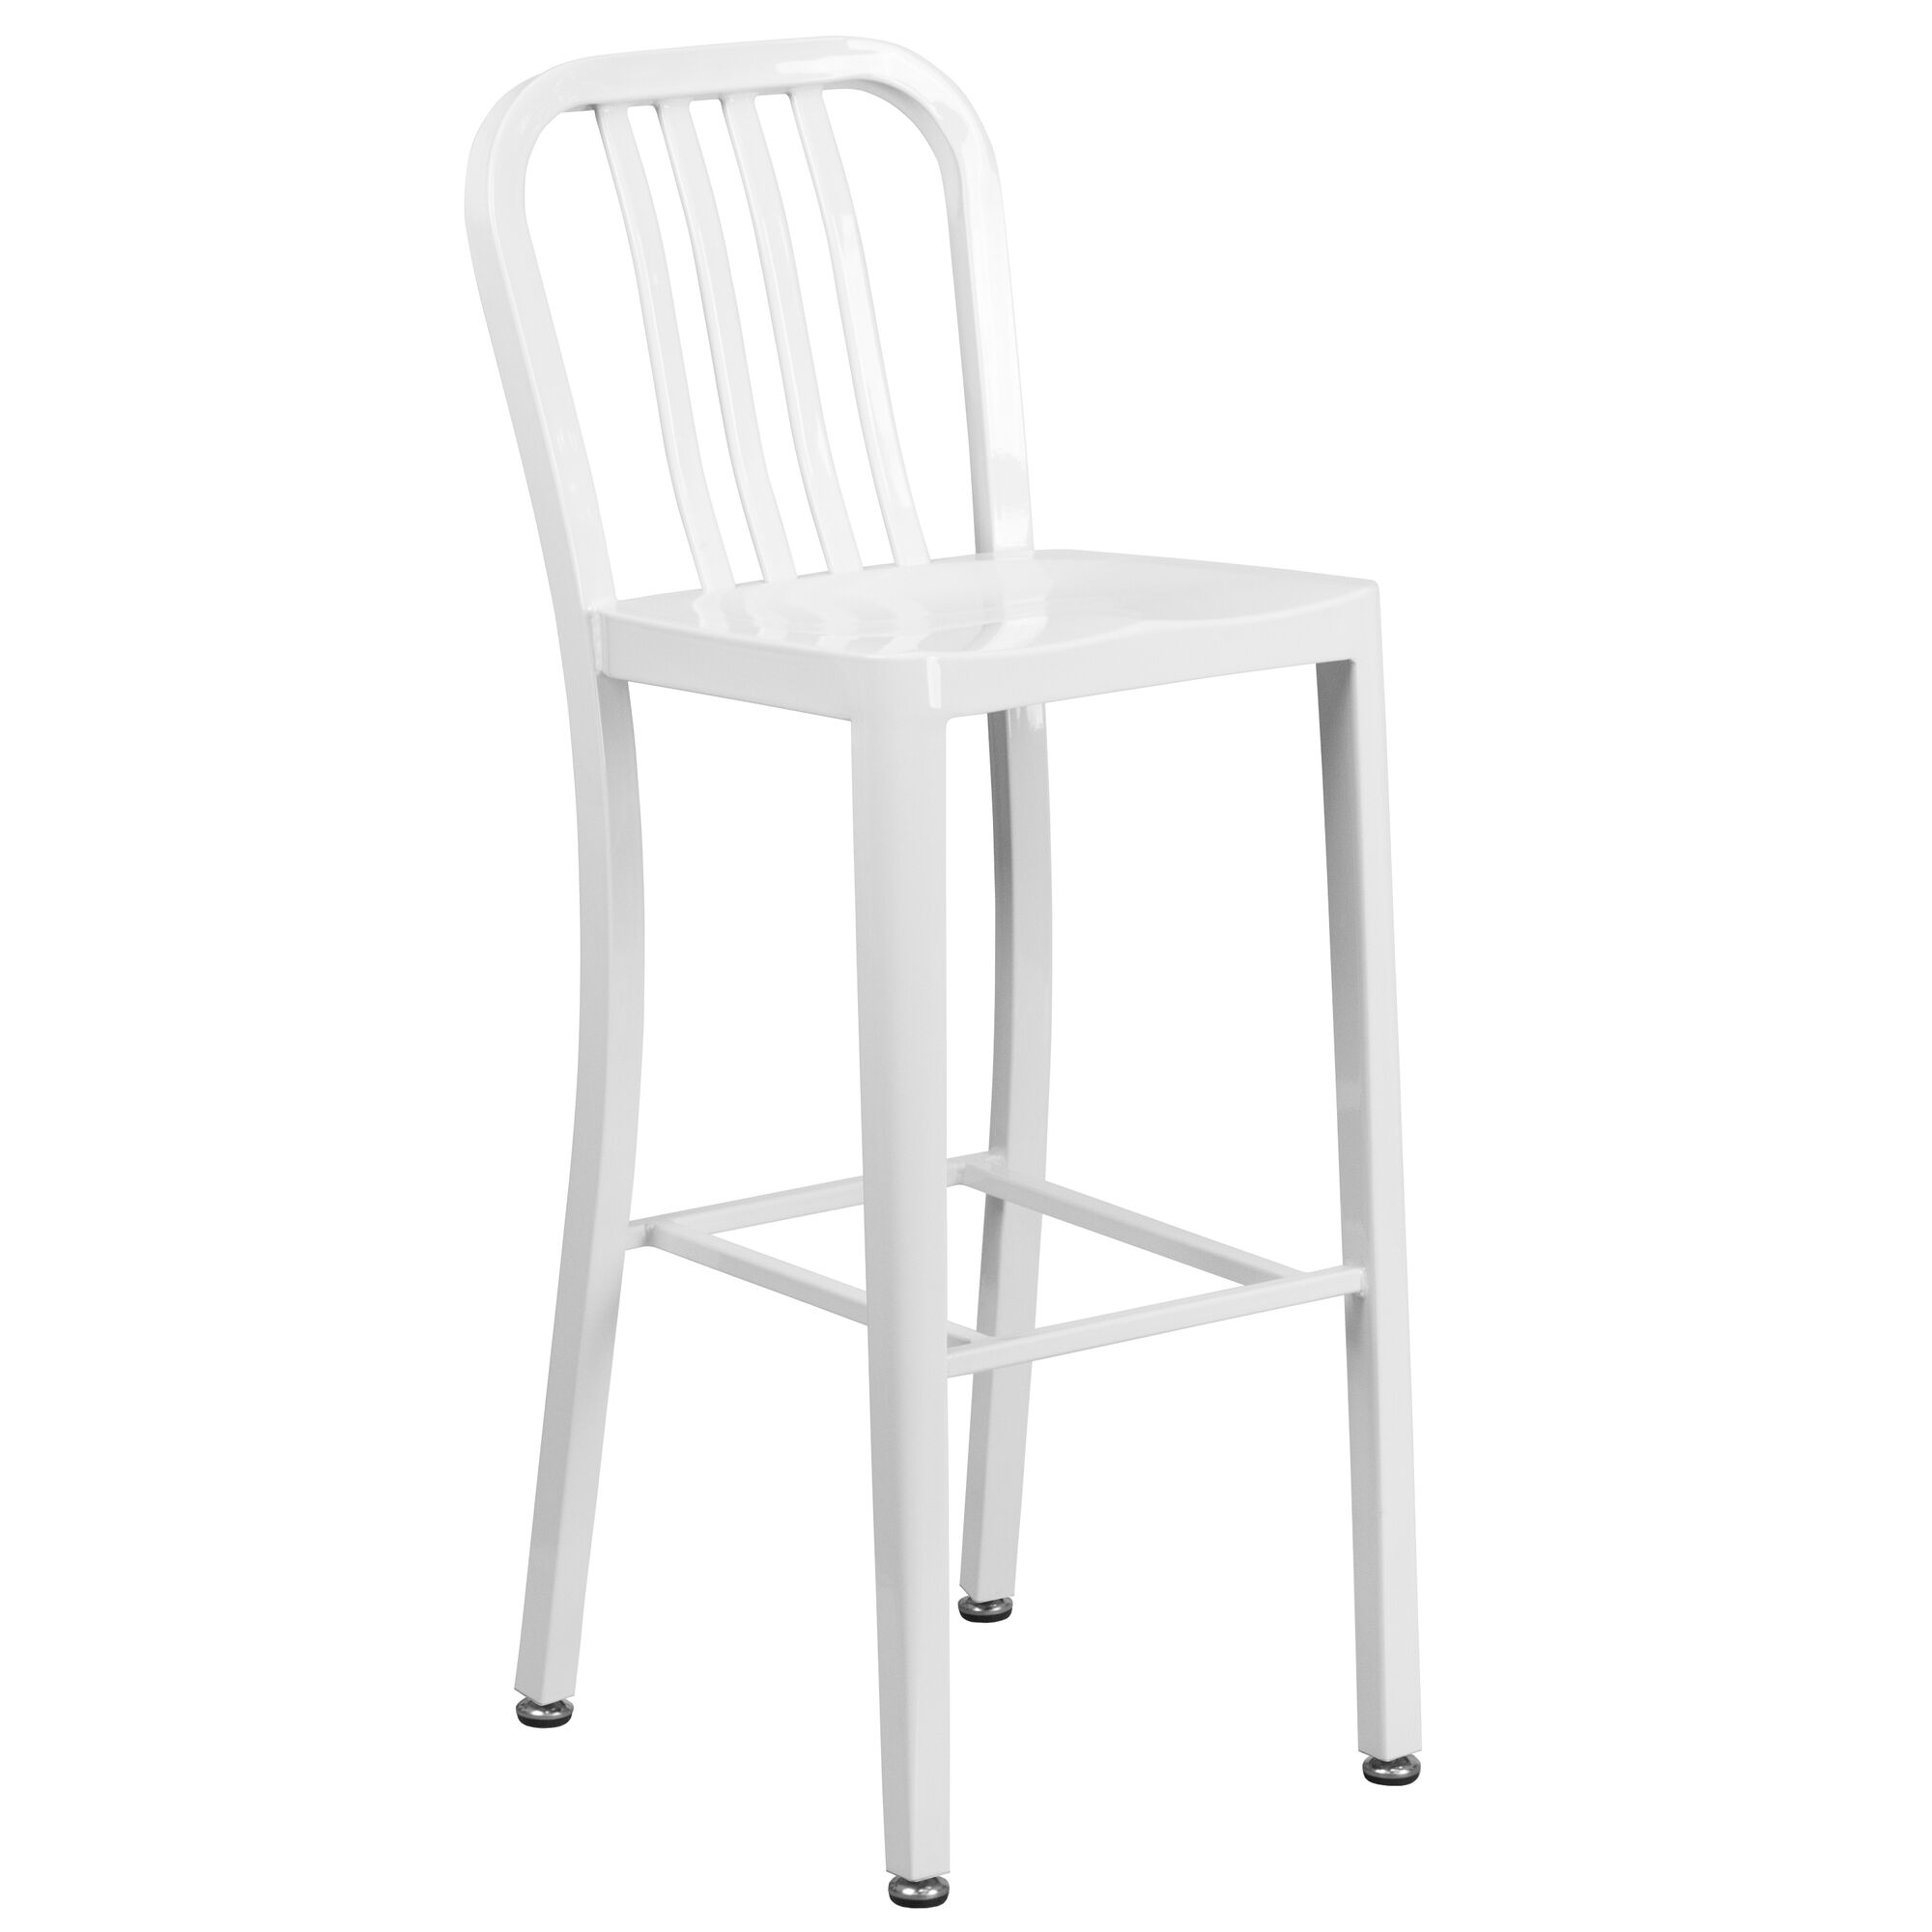 30 White Metal Outdoor Stool Ch 61200